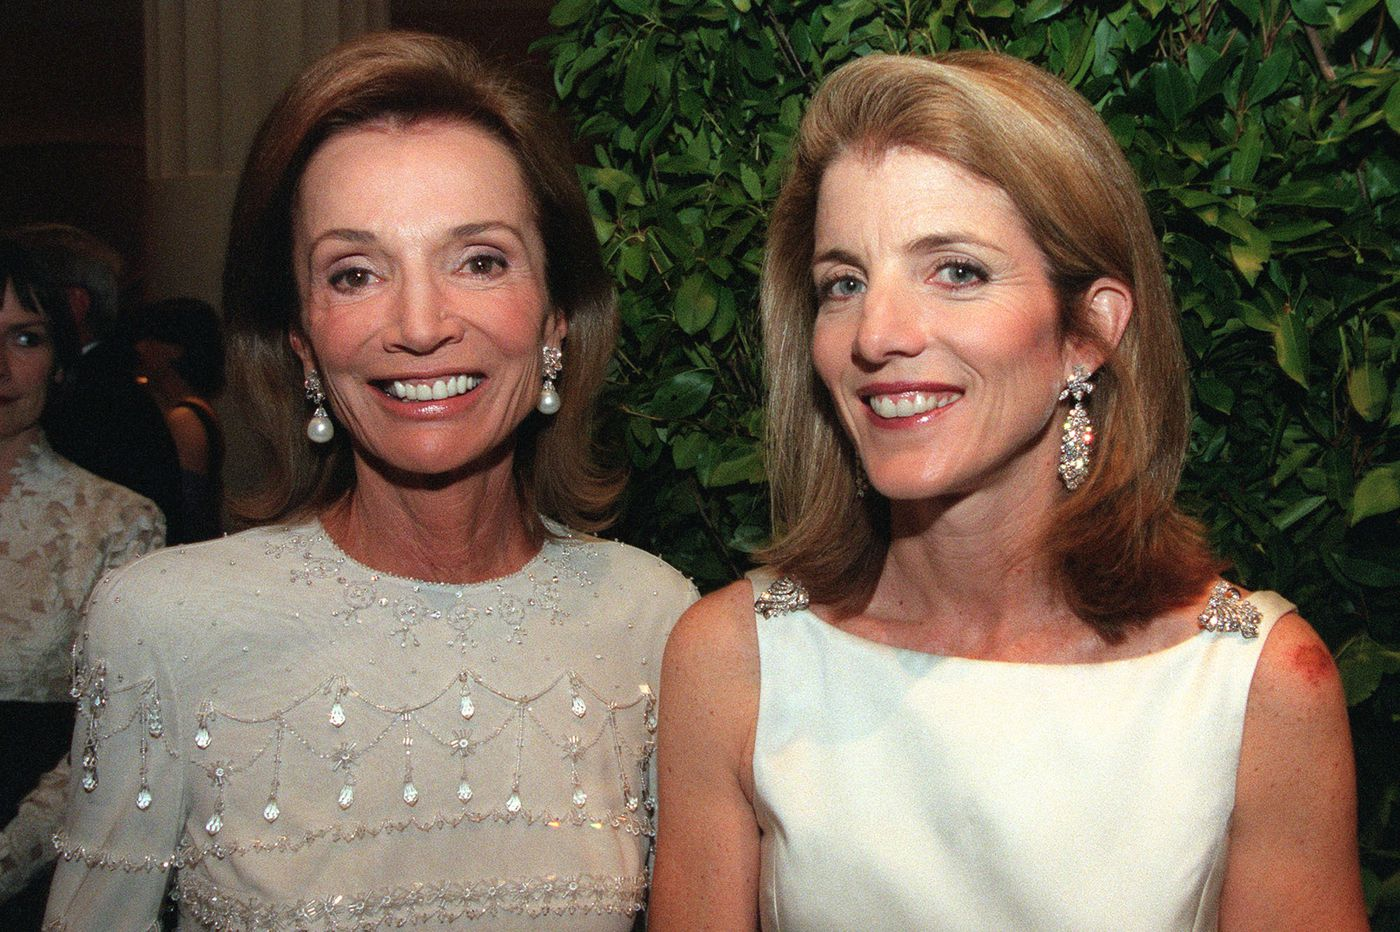 Lee Radziwill, society grande dame and sister of Jacqueline Kennedy Onassis, dies at 85